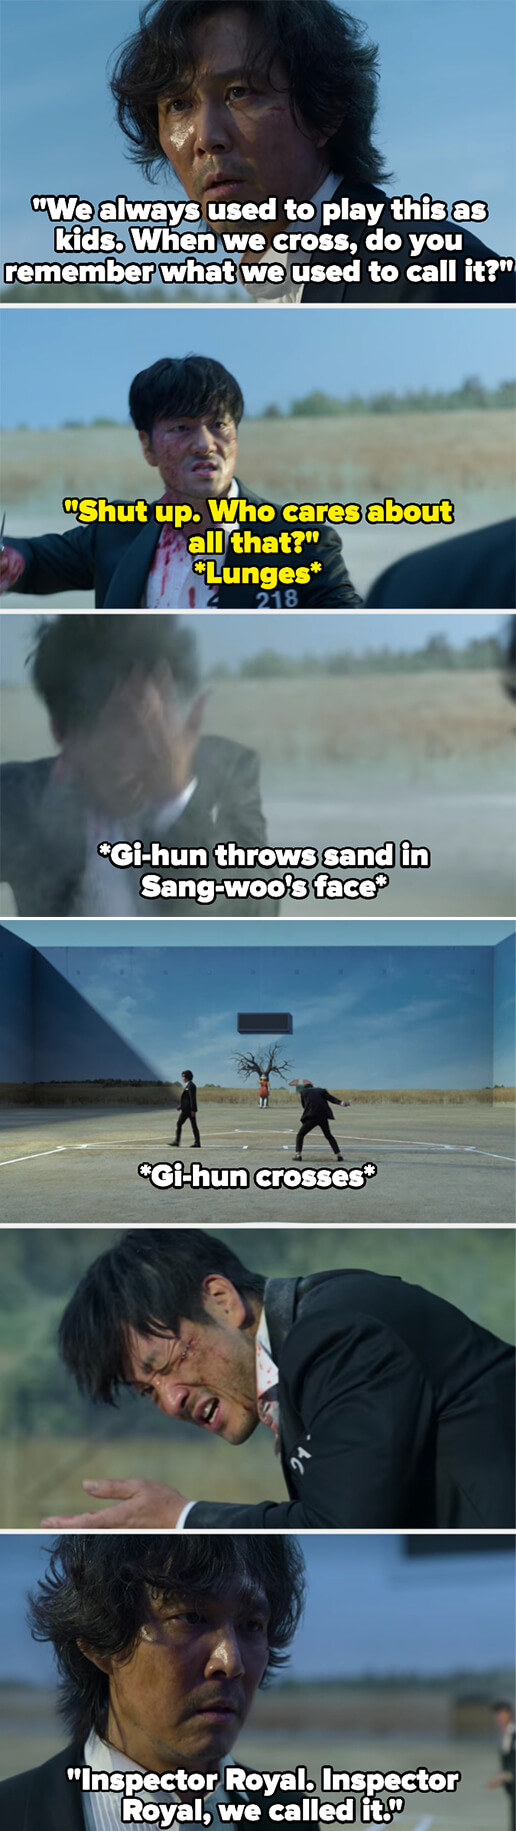 """Gi-hun asks what they used to call it when they crossed, and Sang-woo says he doesn't care, then Gi-hun throws sand in his face and crosses saying they called it """"inspector royal"""""""